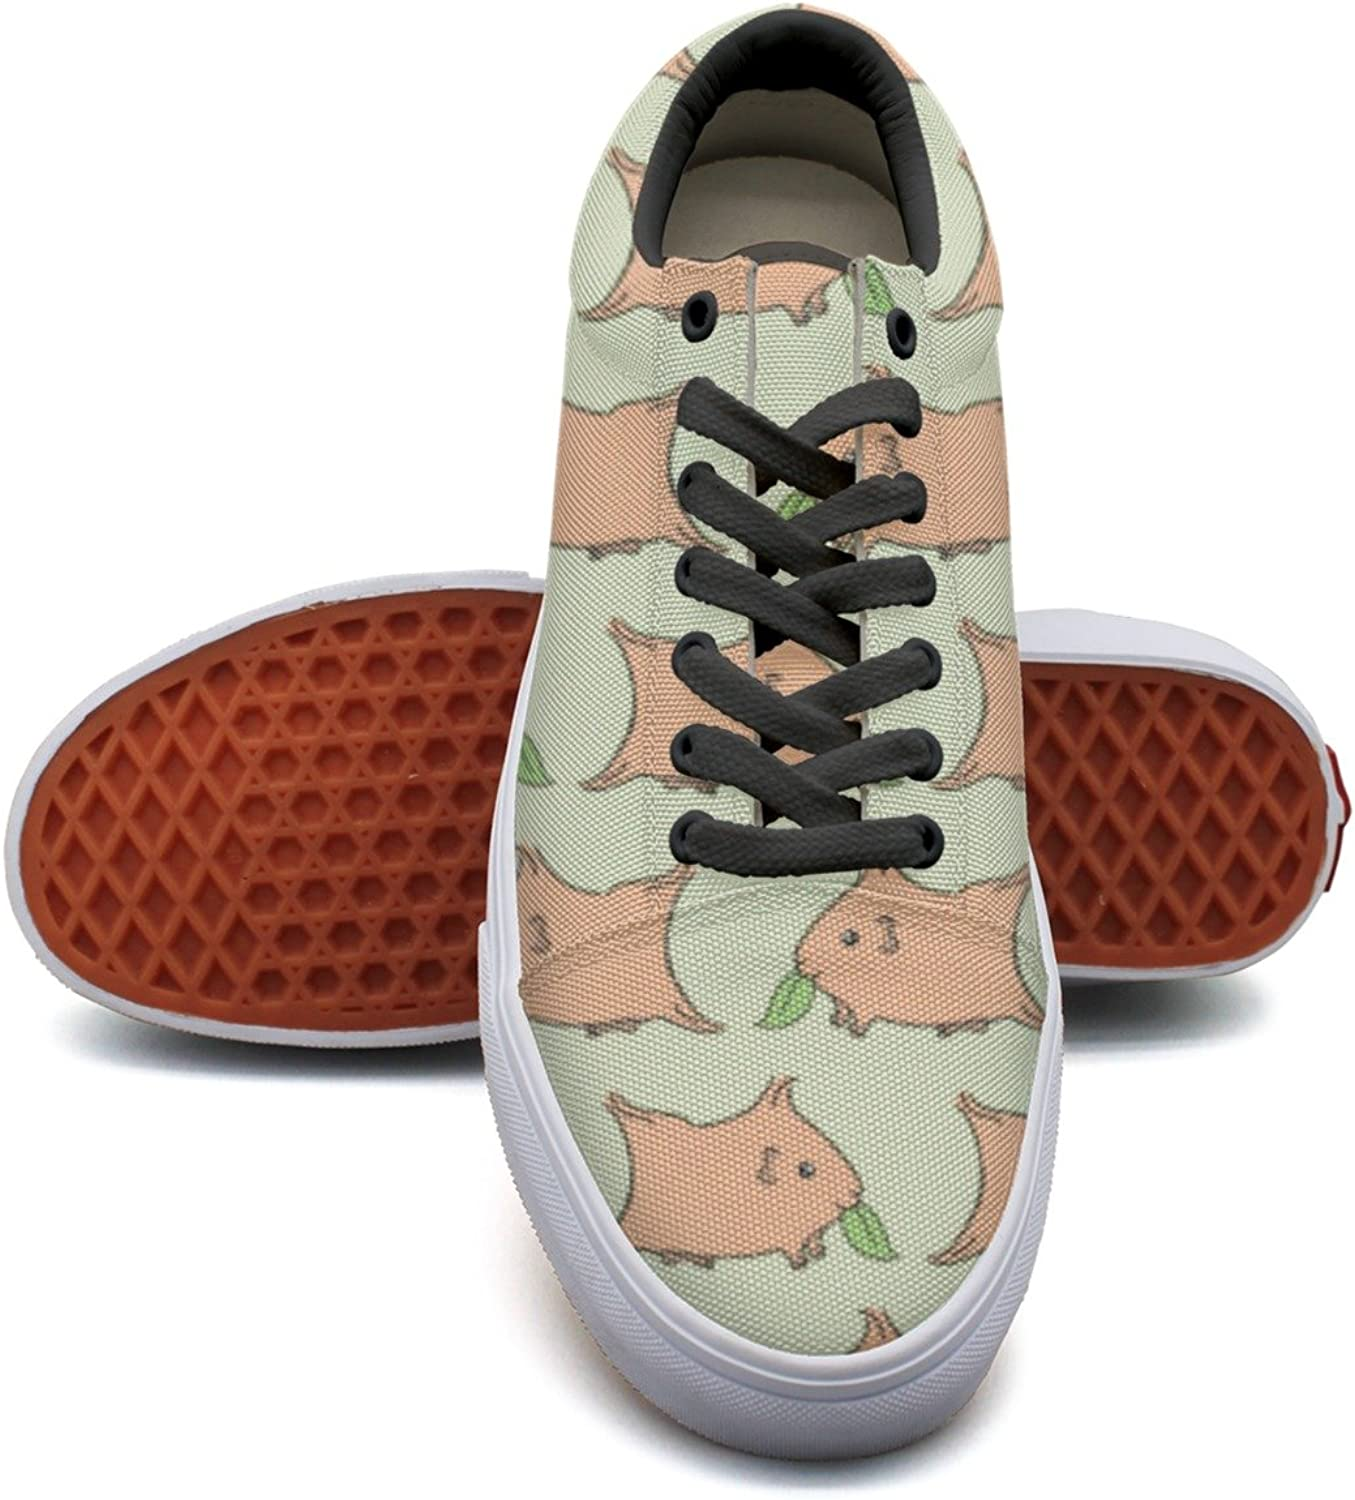 Guinea Pigs Eating Grass Women's Casual shoes Slip-On Lo-Top Fashion Simple